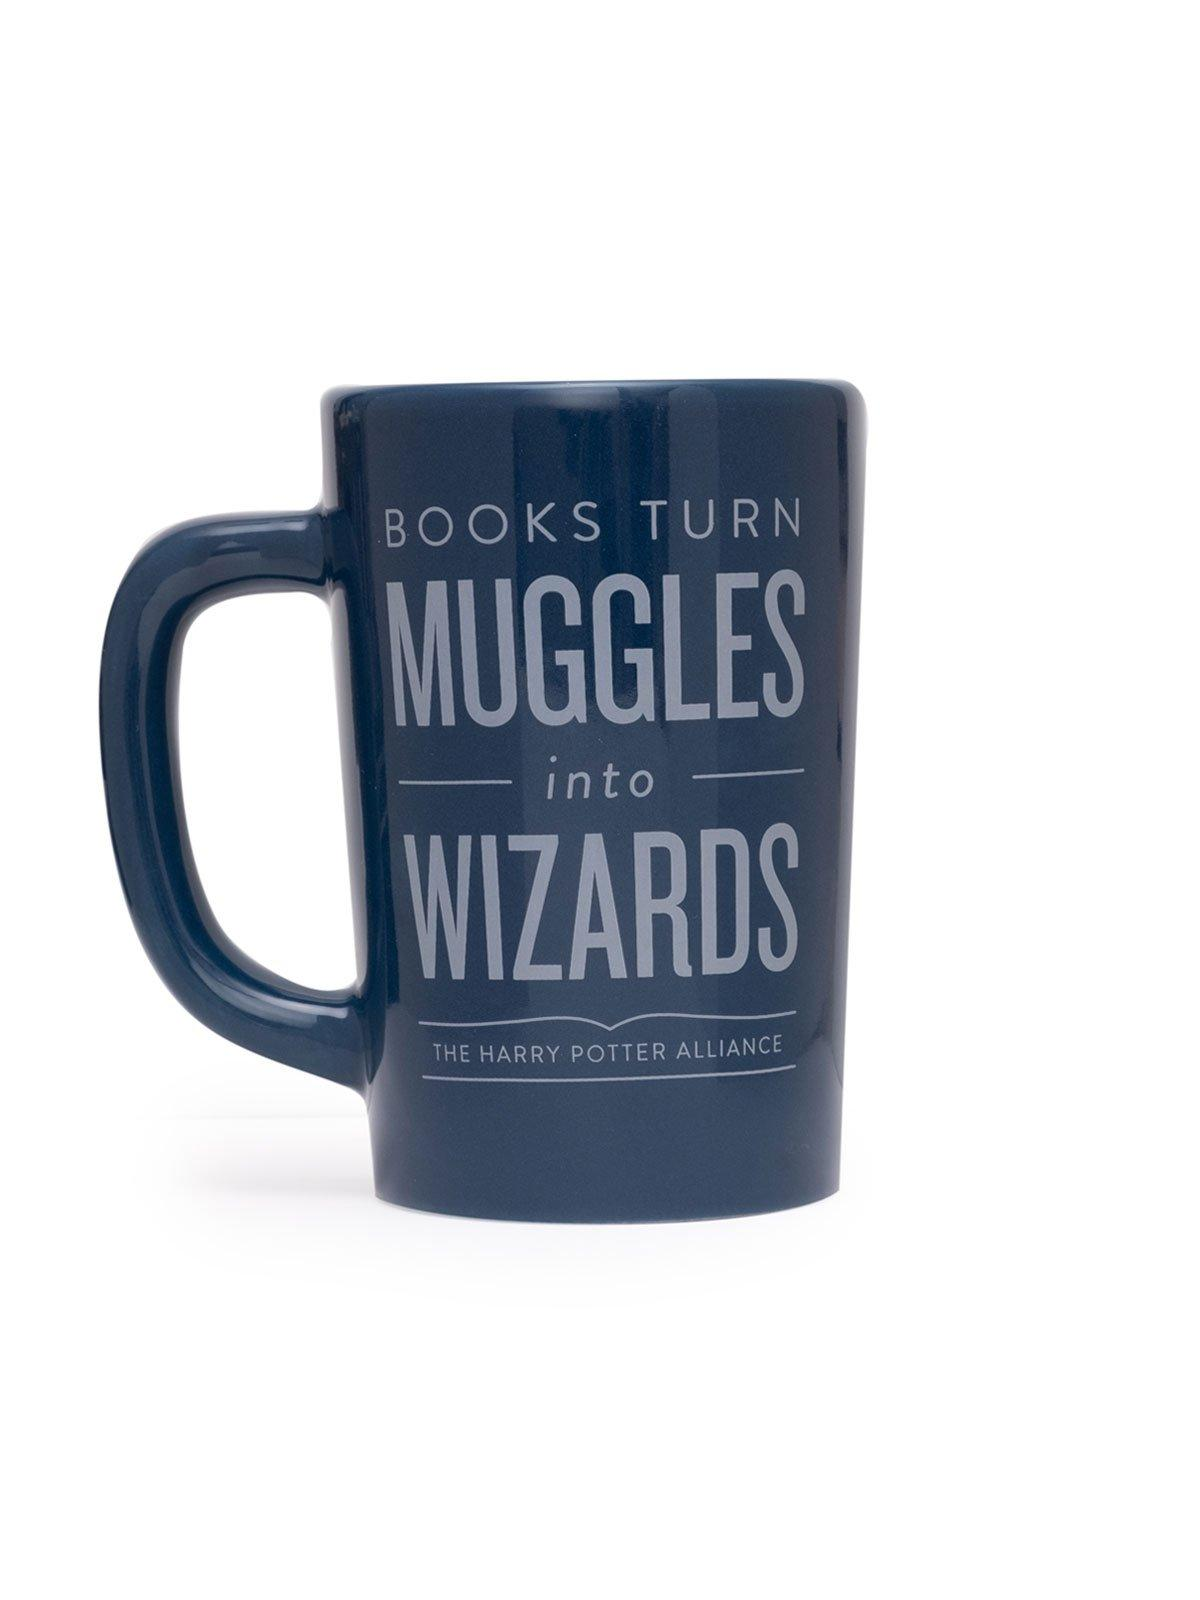 """A blue ceramic mug with lighter blue text reading """"Books Turn Muggles Into Wizards: The Harry Potter Alliance"""""""